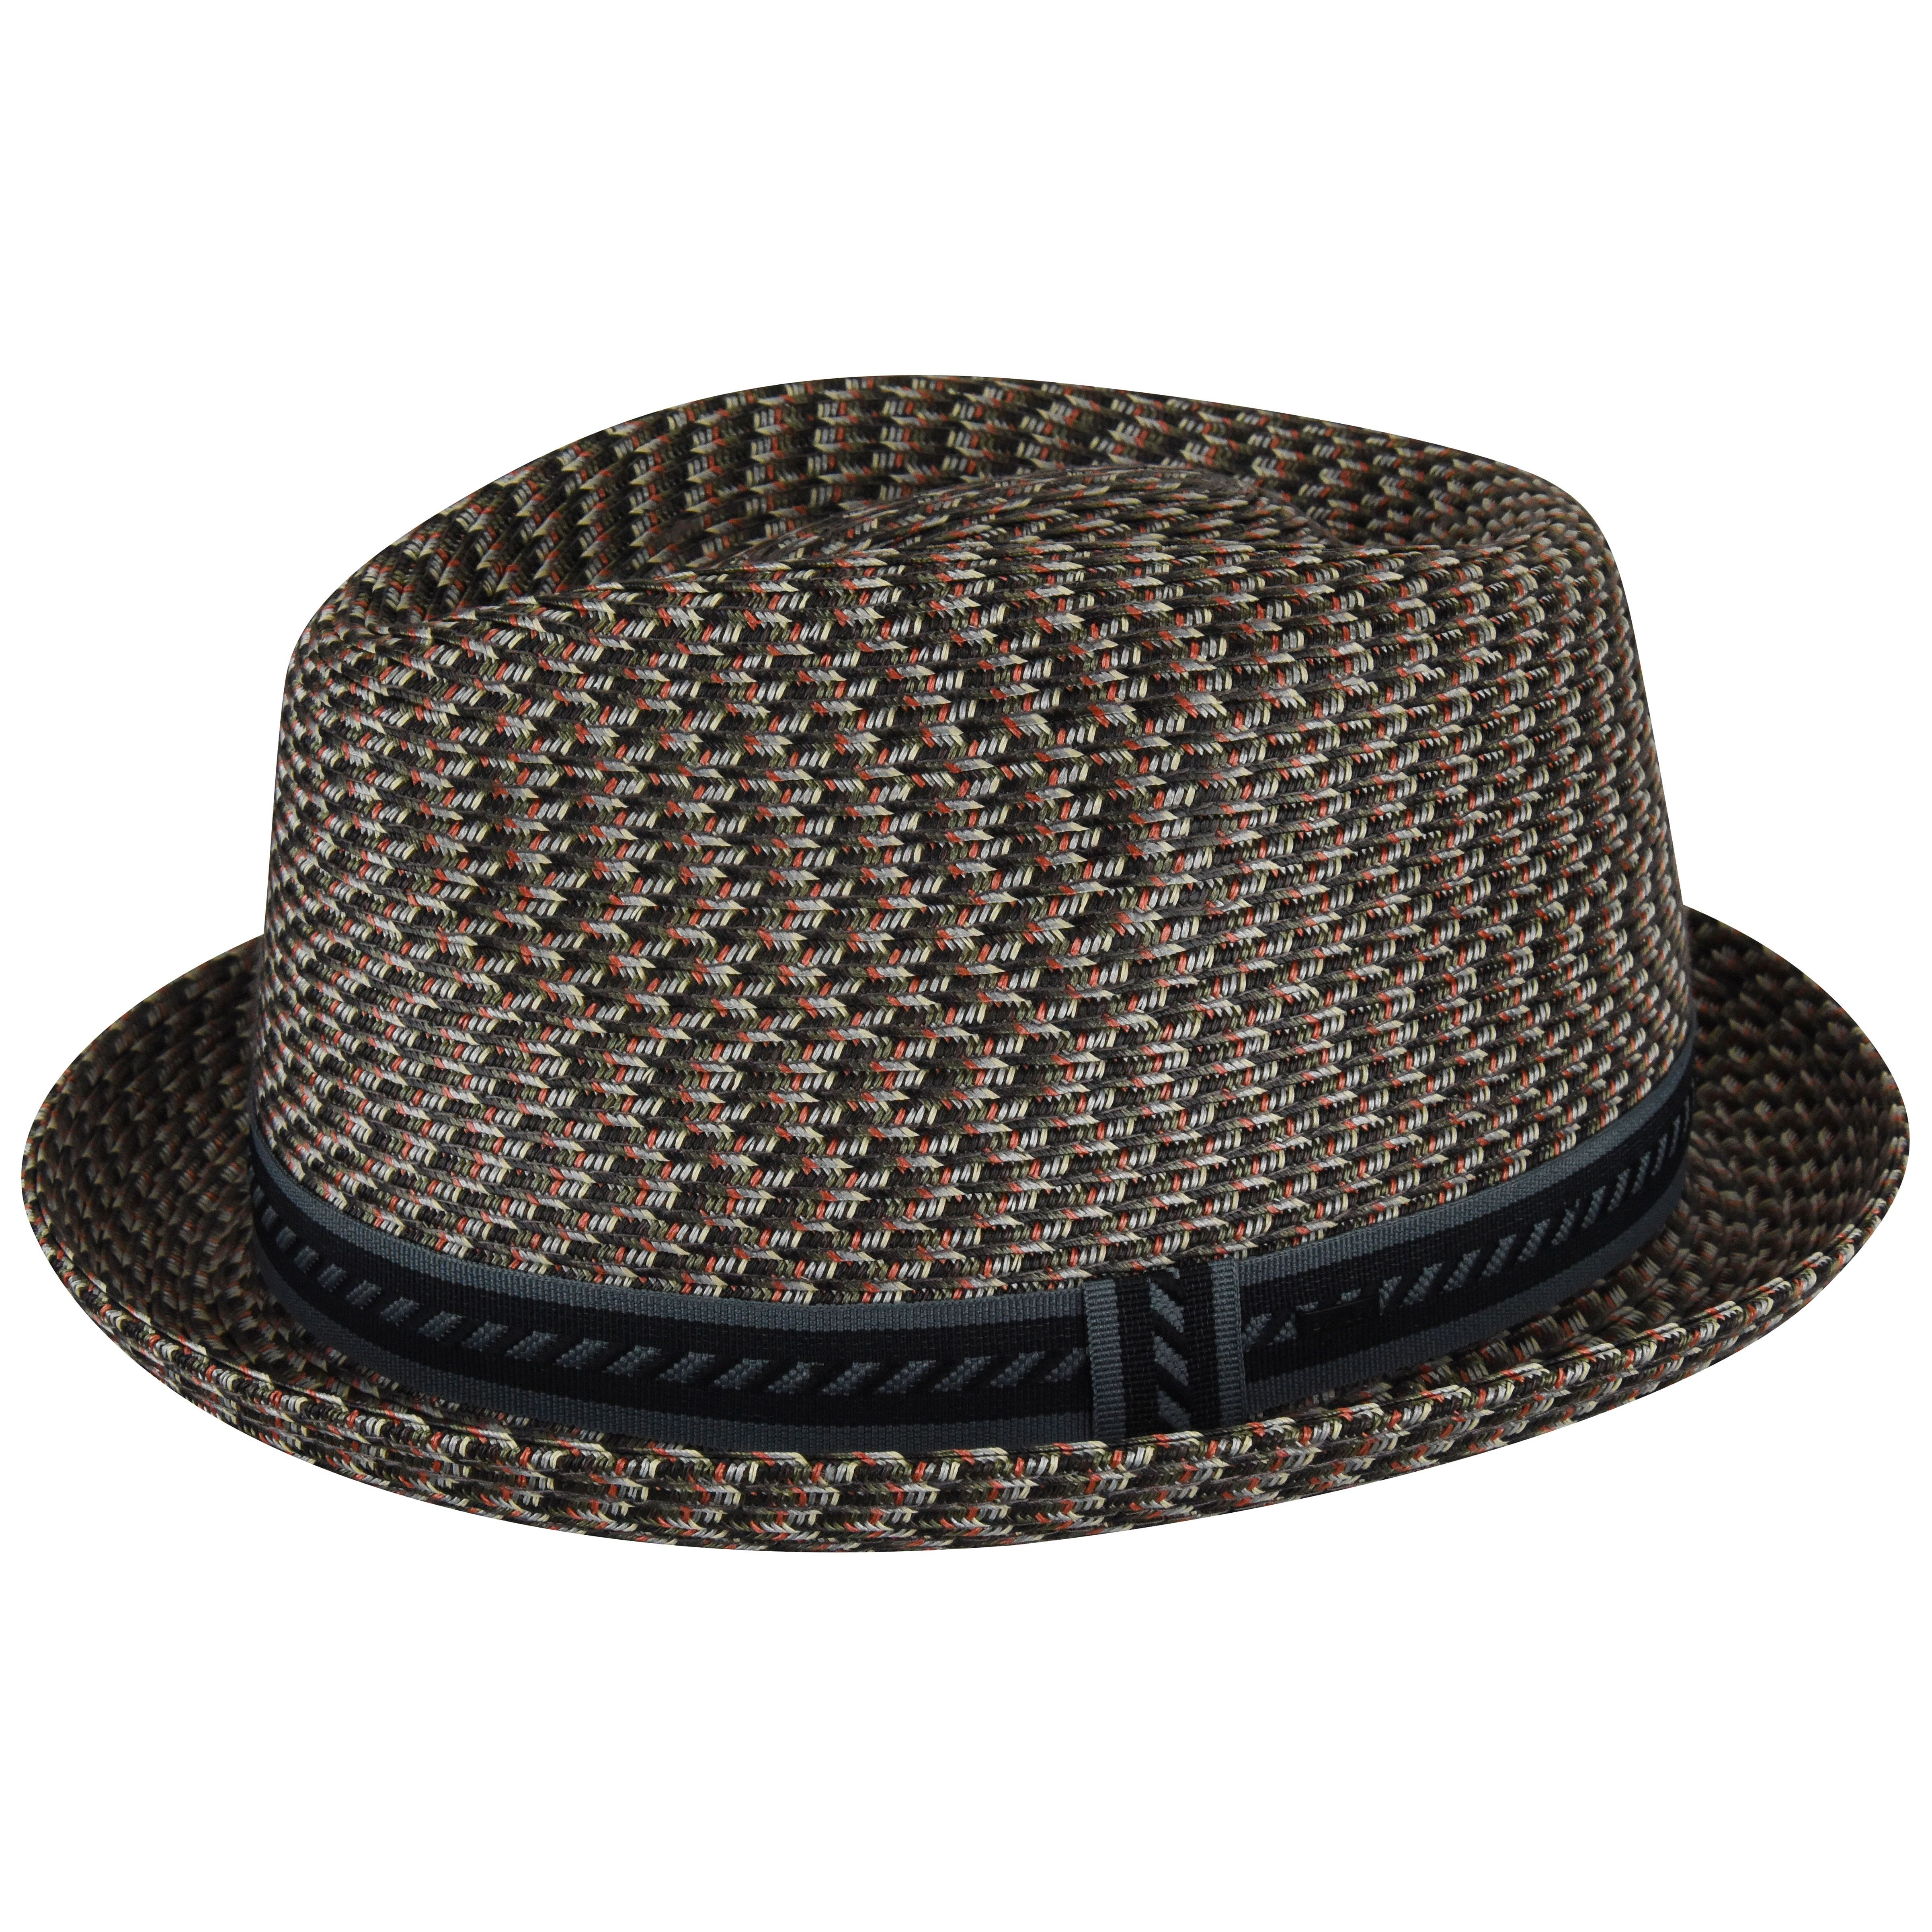 42de0dbe4c540 Bailey of Hollywood Mannes Fedora Straw Fedora